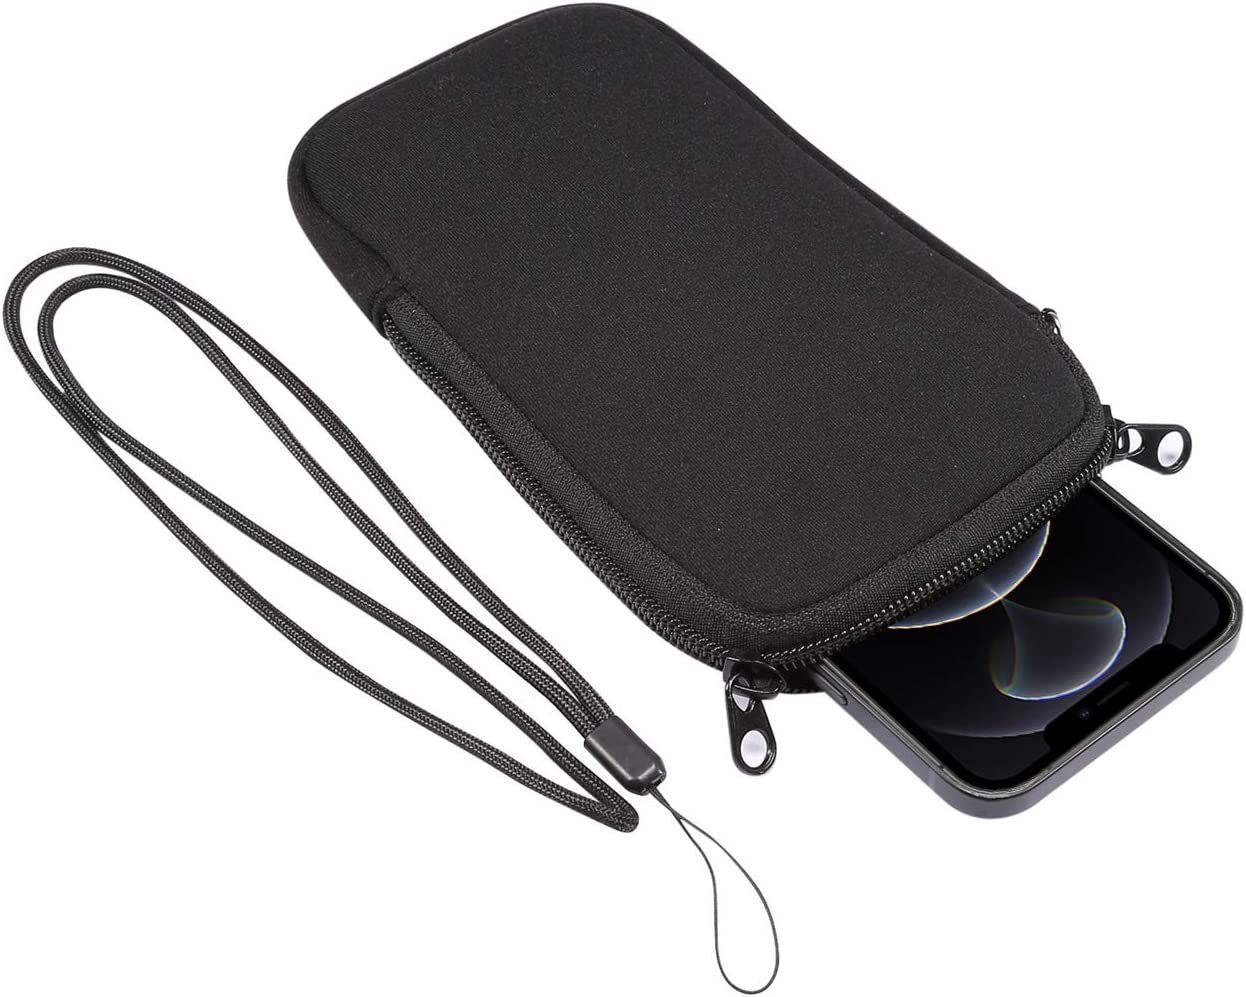 Men Women Neoprene Cell Phone Sleeve Pouch Carrying Case Holder with Neck Lanyard for Samsung Galaxy A10S A30S A10 A20 A50 A31 A51 S10 Plus S9+ / Moto G Power, Stylus, G8 Power Play Plus G7 Z4 (Black)